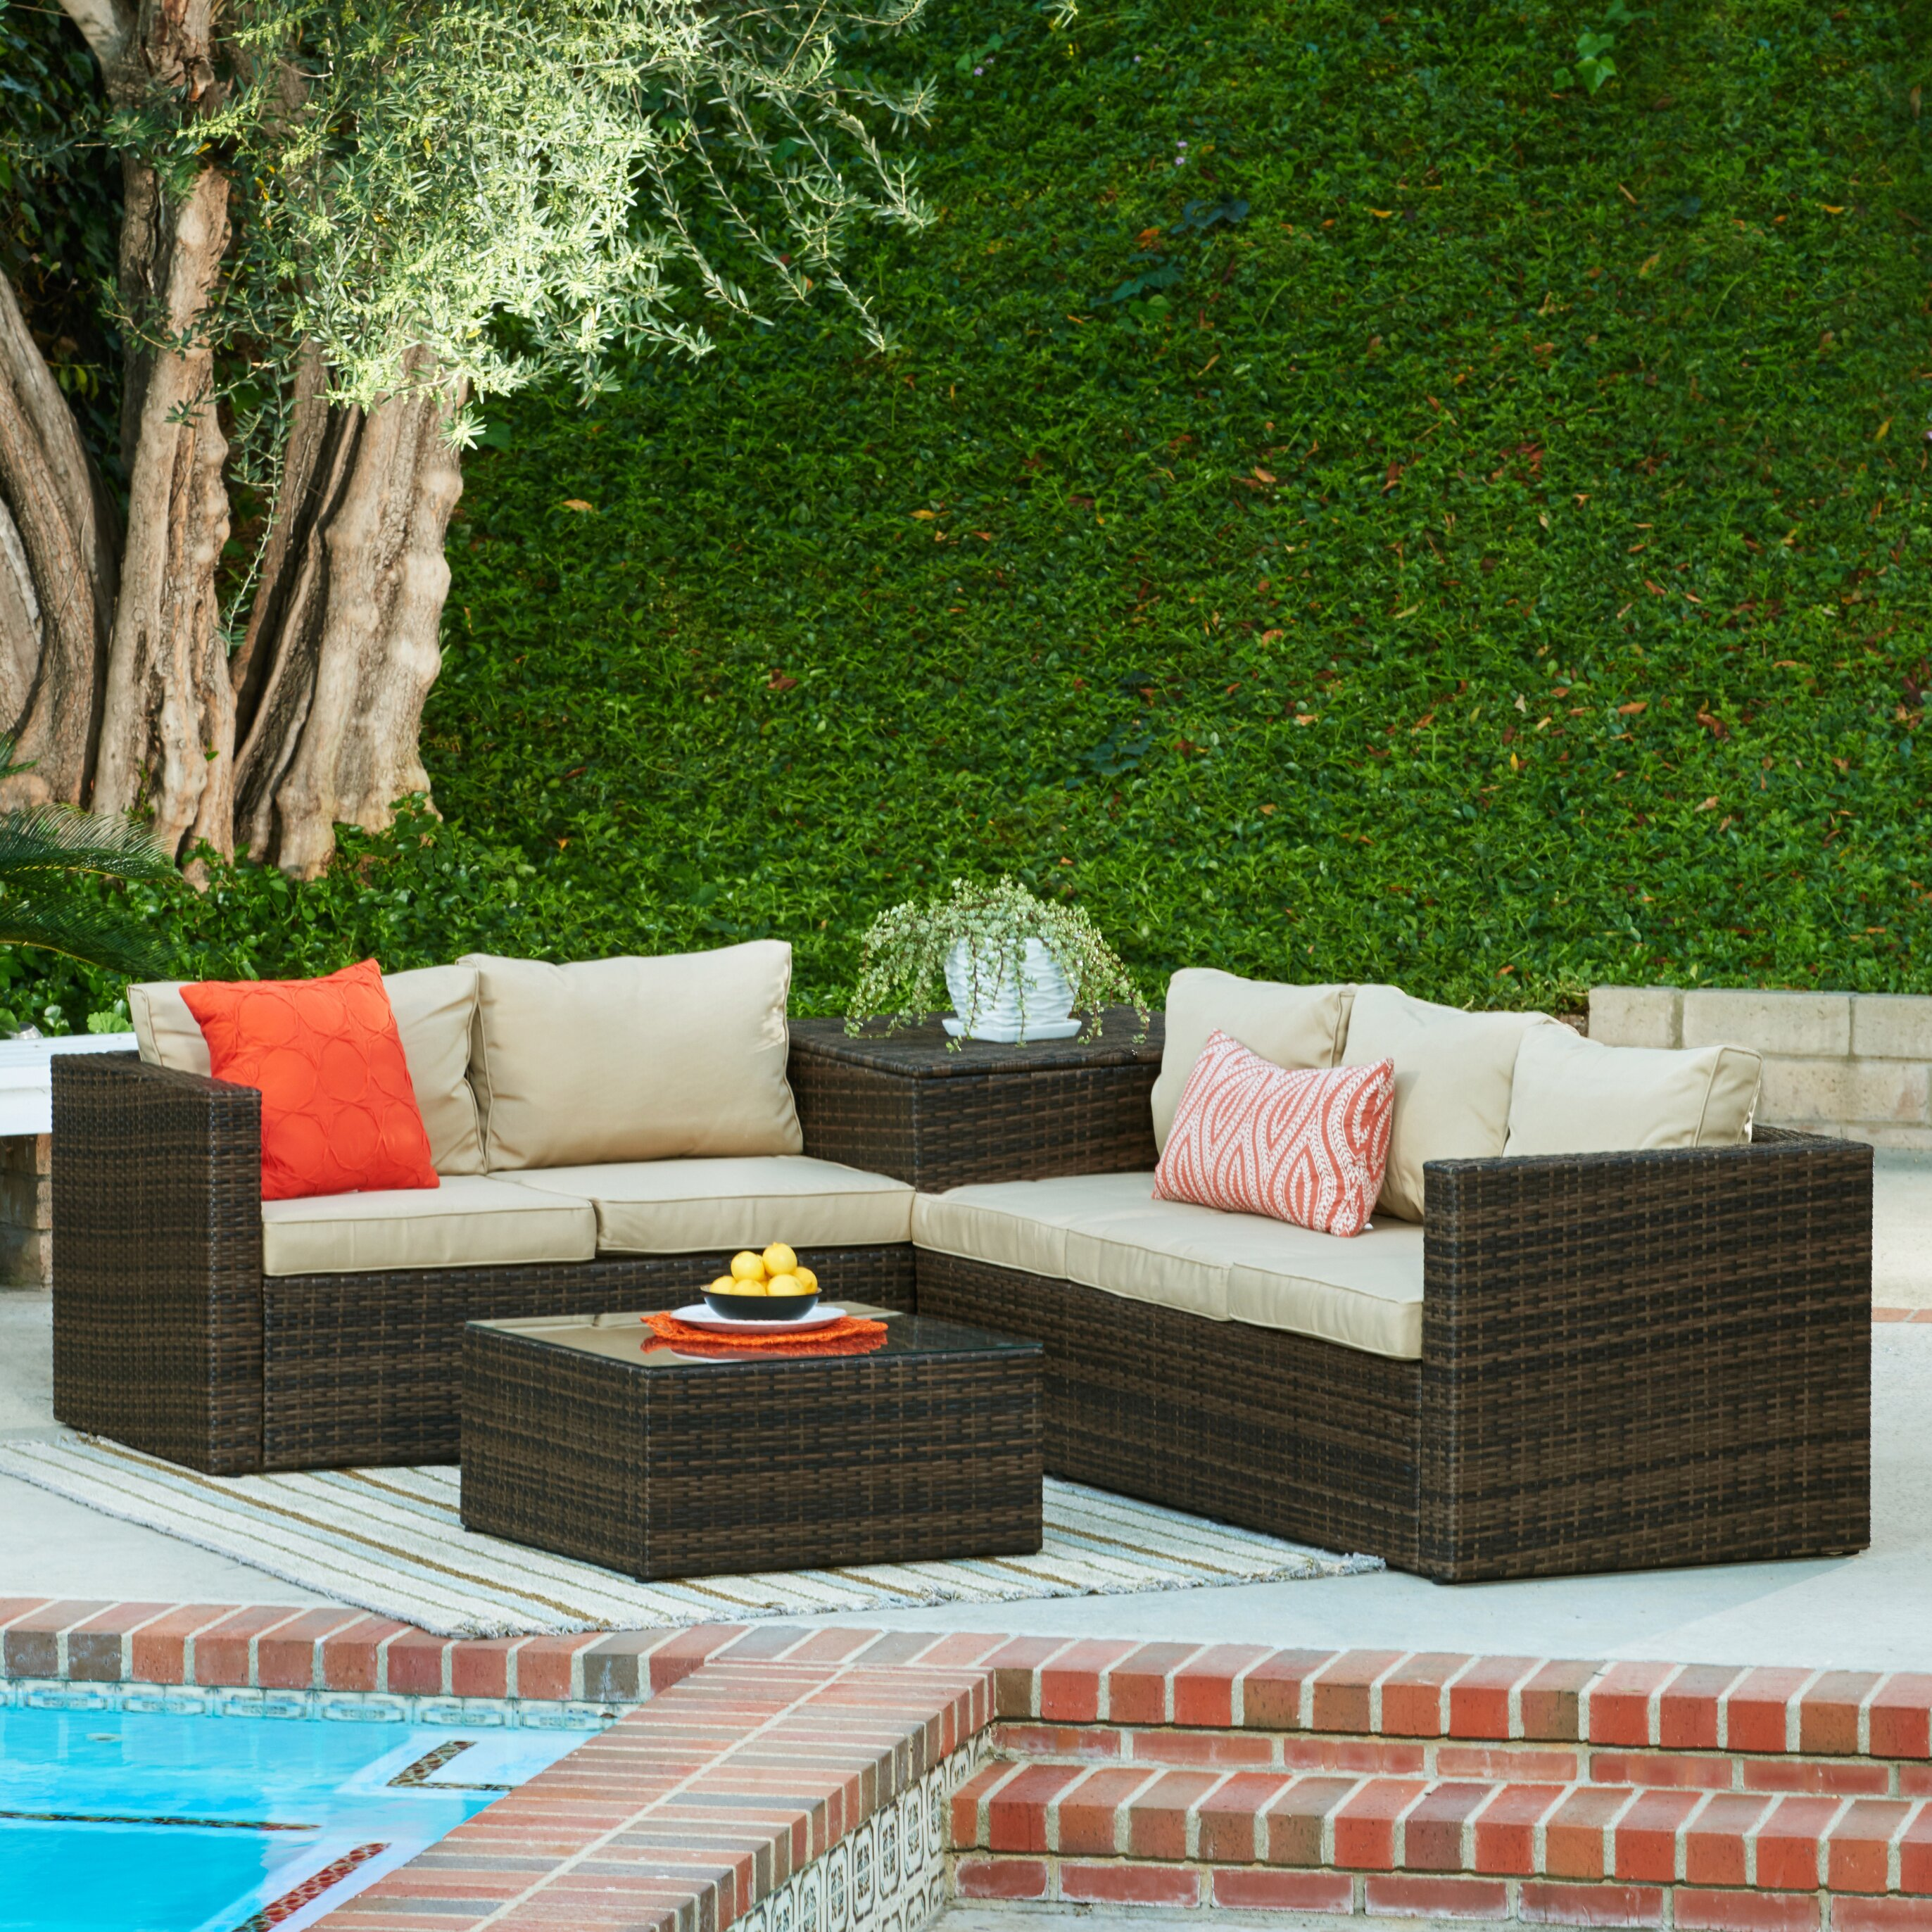 Brayden Studio Armbruster 4 Piece Sectional Seating Group With Cushions Reviews Wayfair